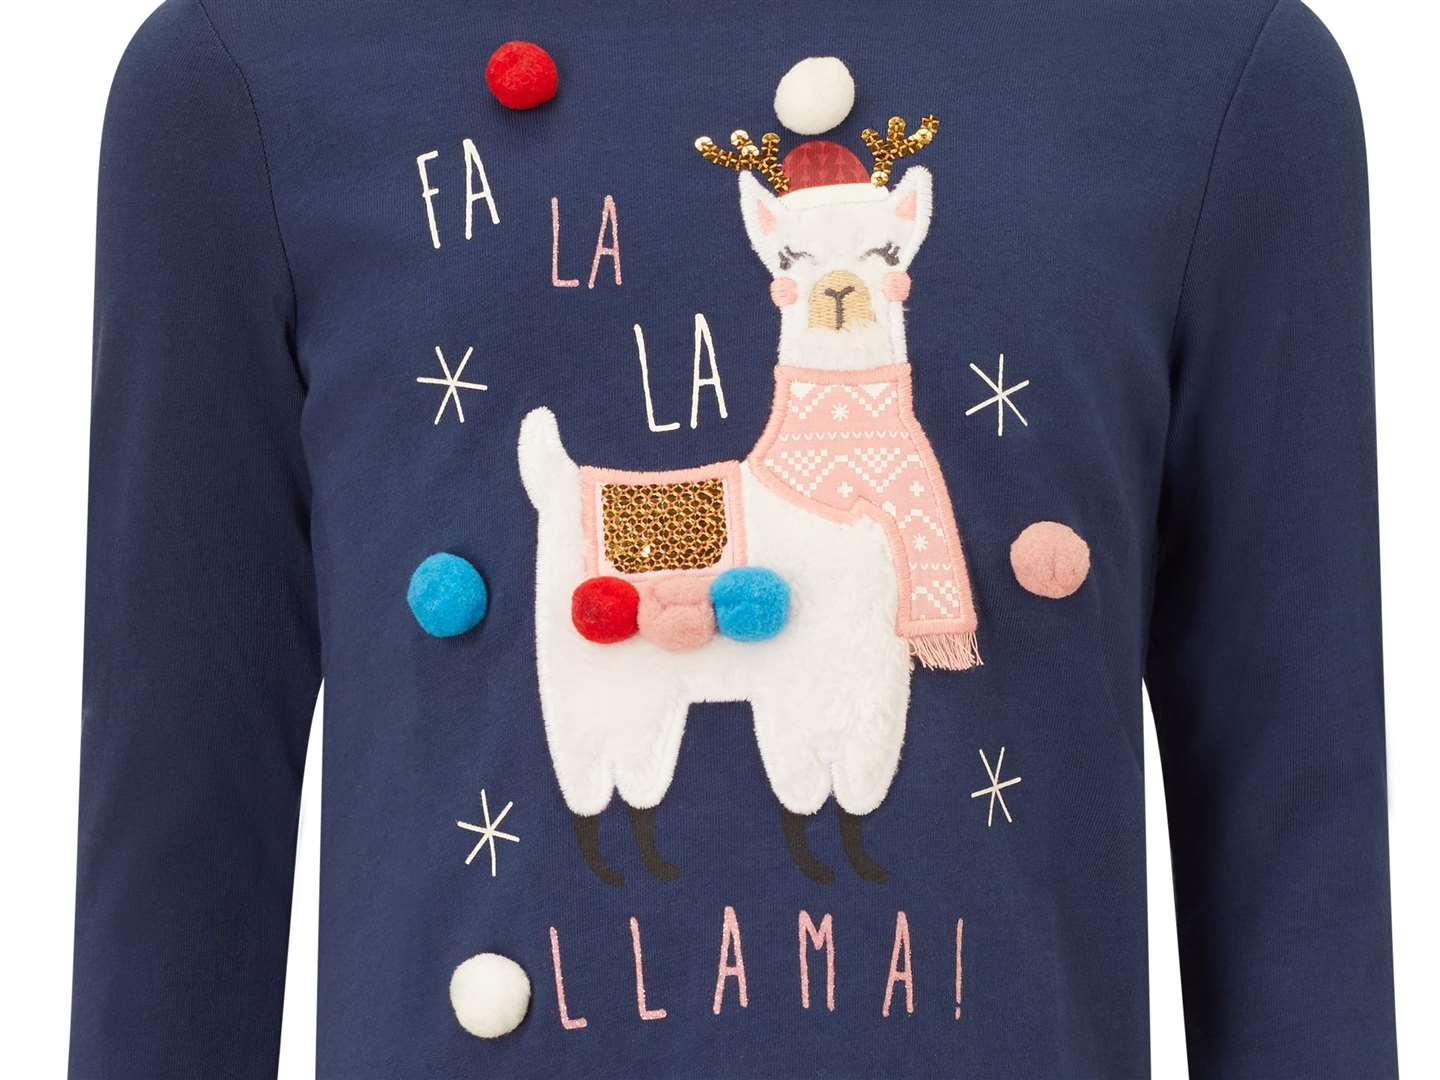 Fa la la llama! Trot along to Tesco for this long-sleeve t-shirt which is just £5.